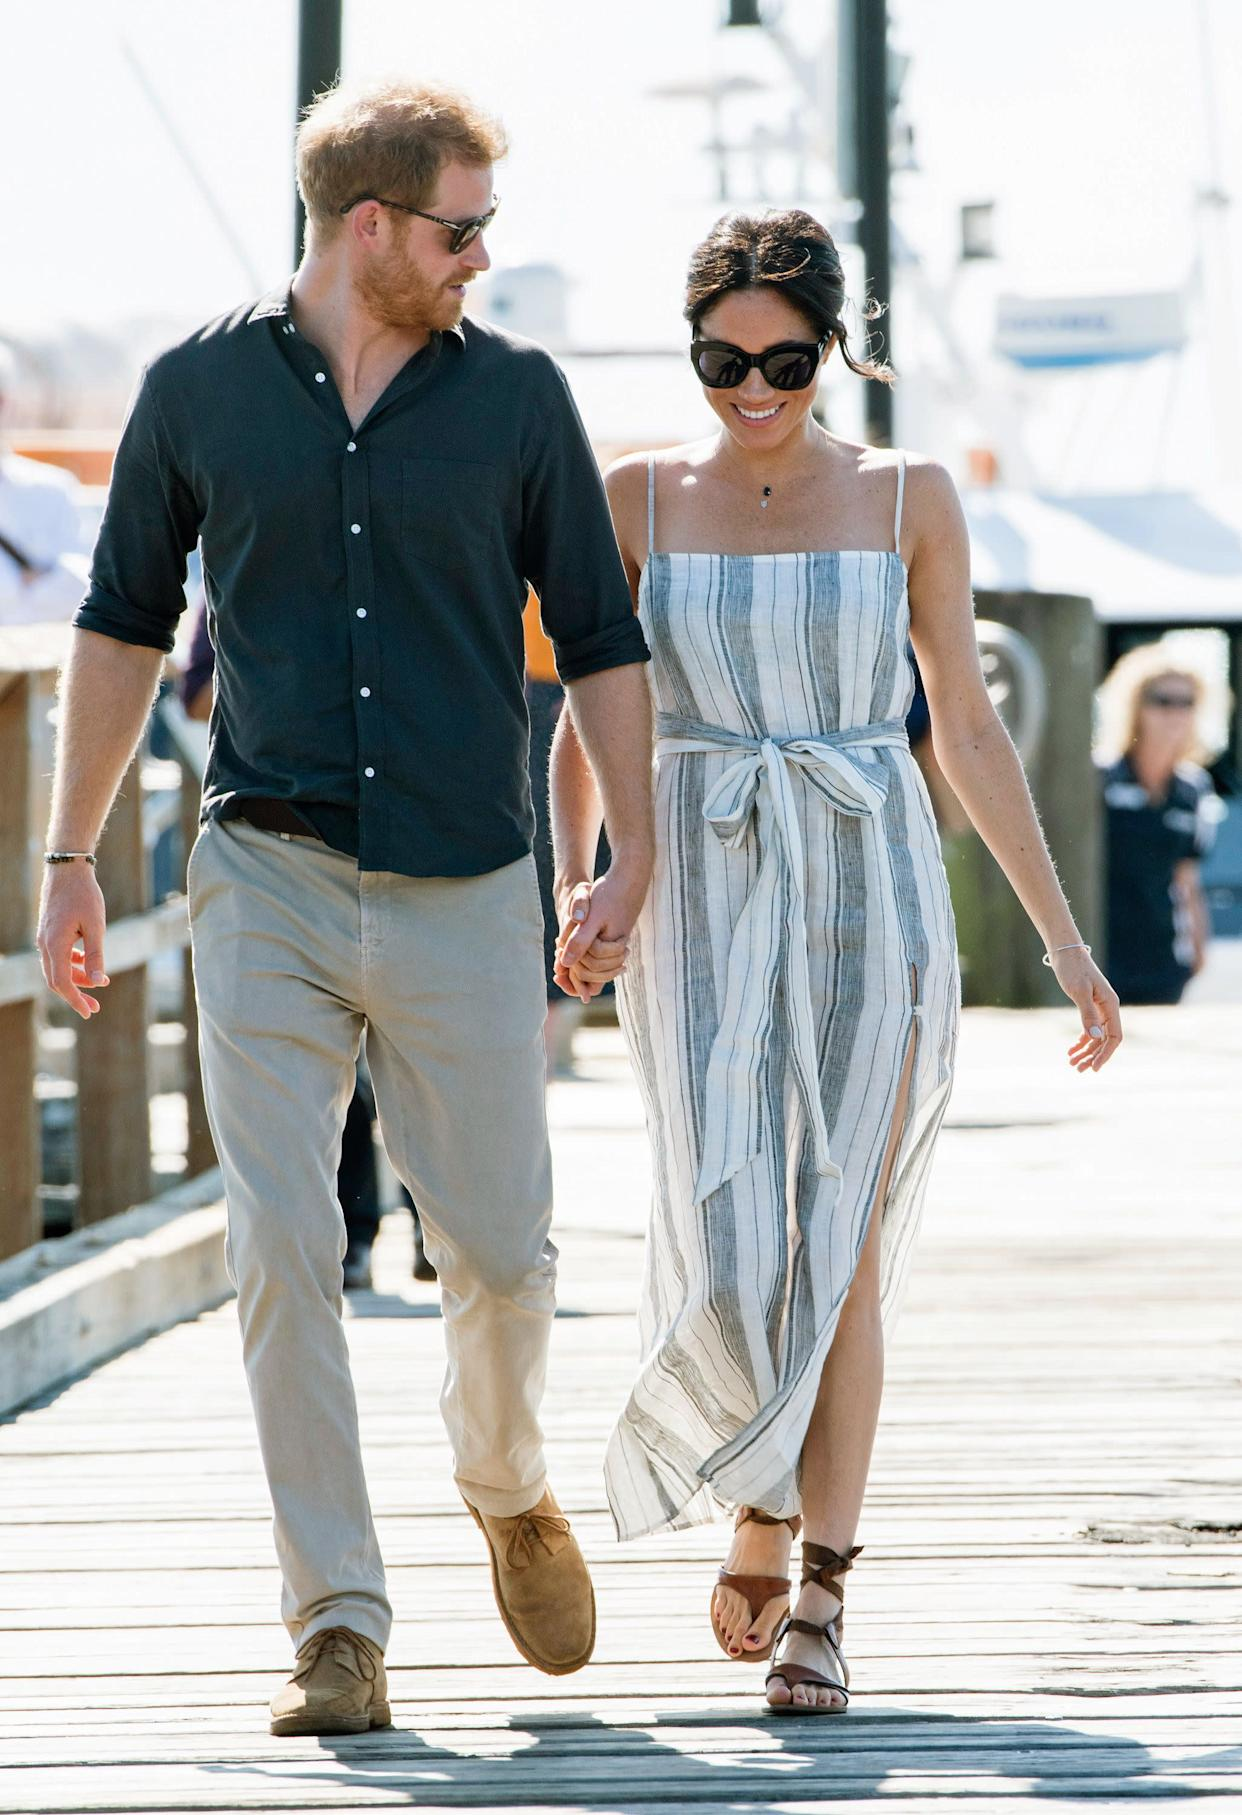 "The duchess wears a striped dress by <a href=""https://www.thereformation.com/products/pineapple-dress"" rel=""nofollow noopener"" target=""_blank"" data-ylk=""slk:Reformation"" class=""link rapid-noclick-resp"">Reformation</a>&nbsp;(which is currently unavailable online) on day 7 of the royal tour. The royal couple are seen walking along the Kingfisher Bay Jetty on Fraser Island on Oct. 22."